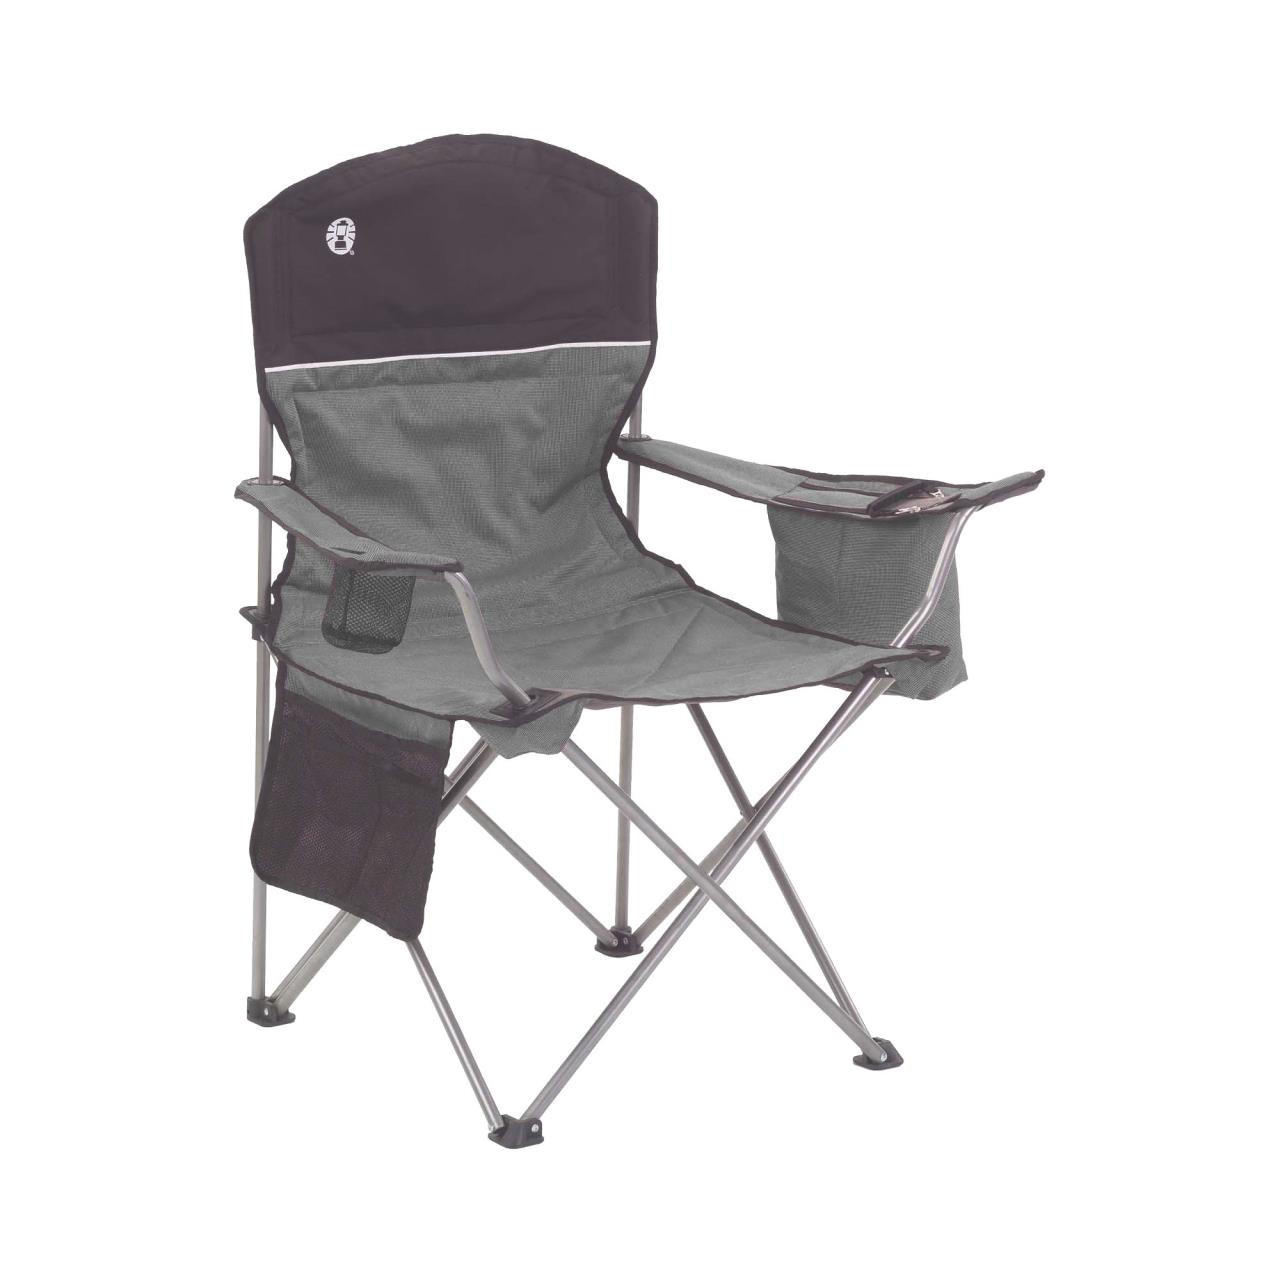 Coleman Comfortsmart Chair Coleman Oversized Quad Chair W Cooler